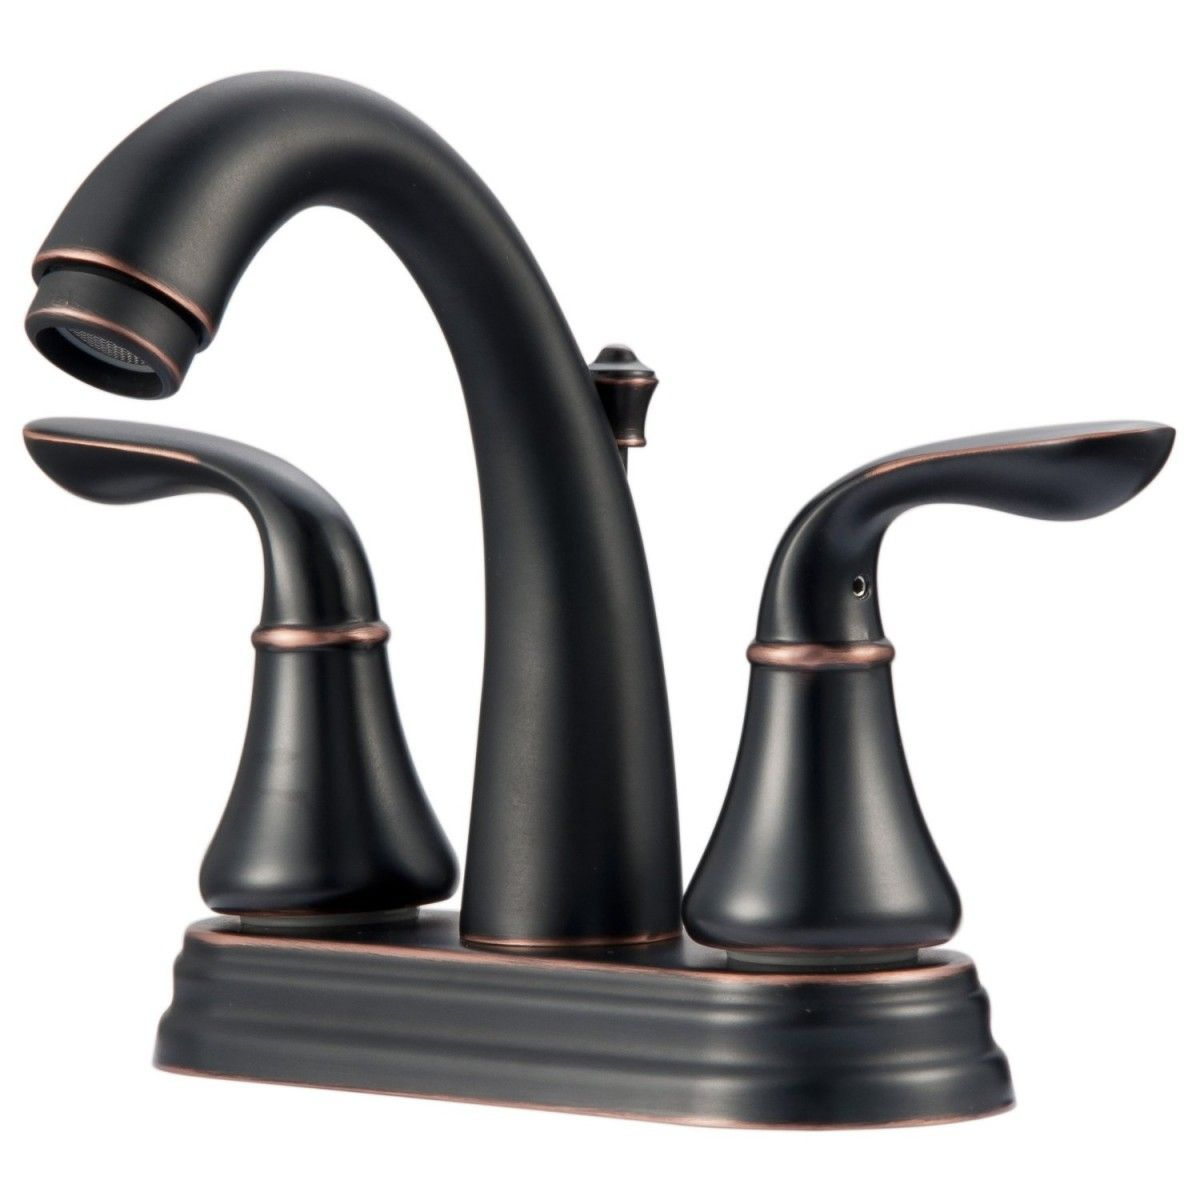 Ultra Uf45725 Arc Collection Two Handle Lavatory Faucet Oil Rubbed